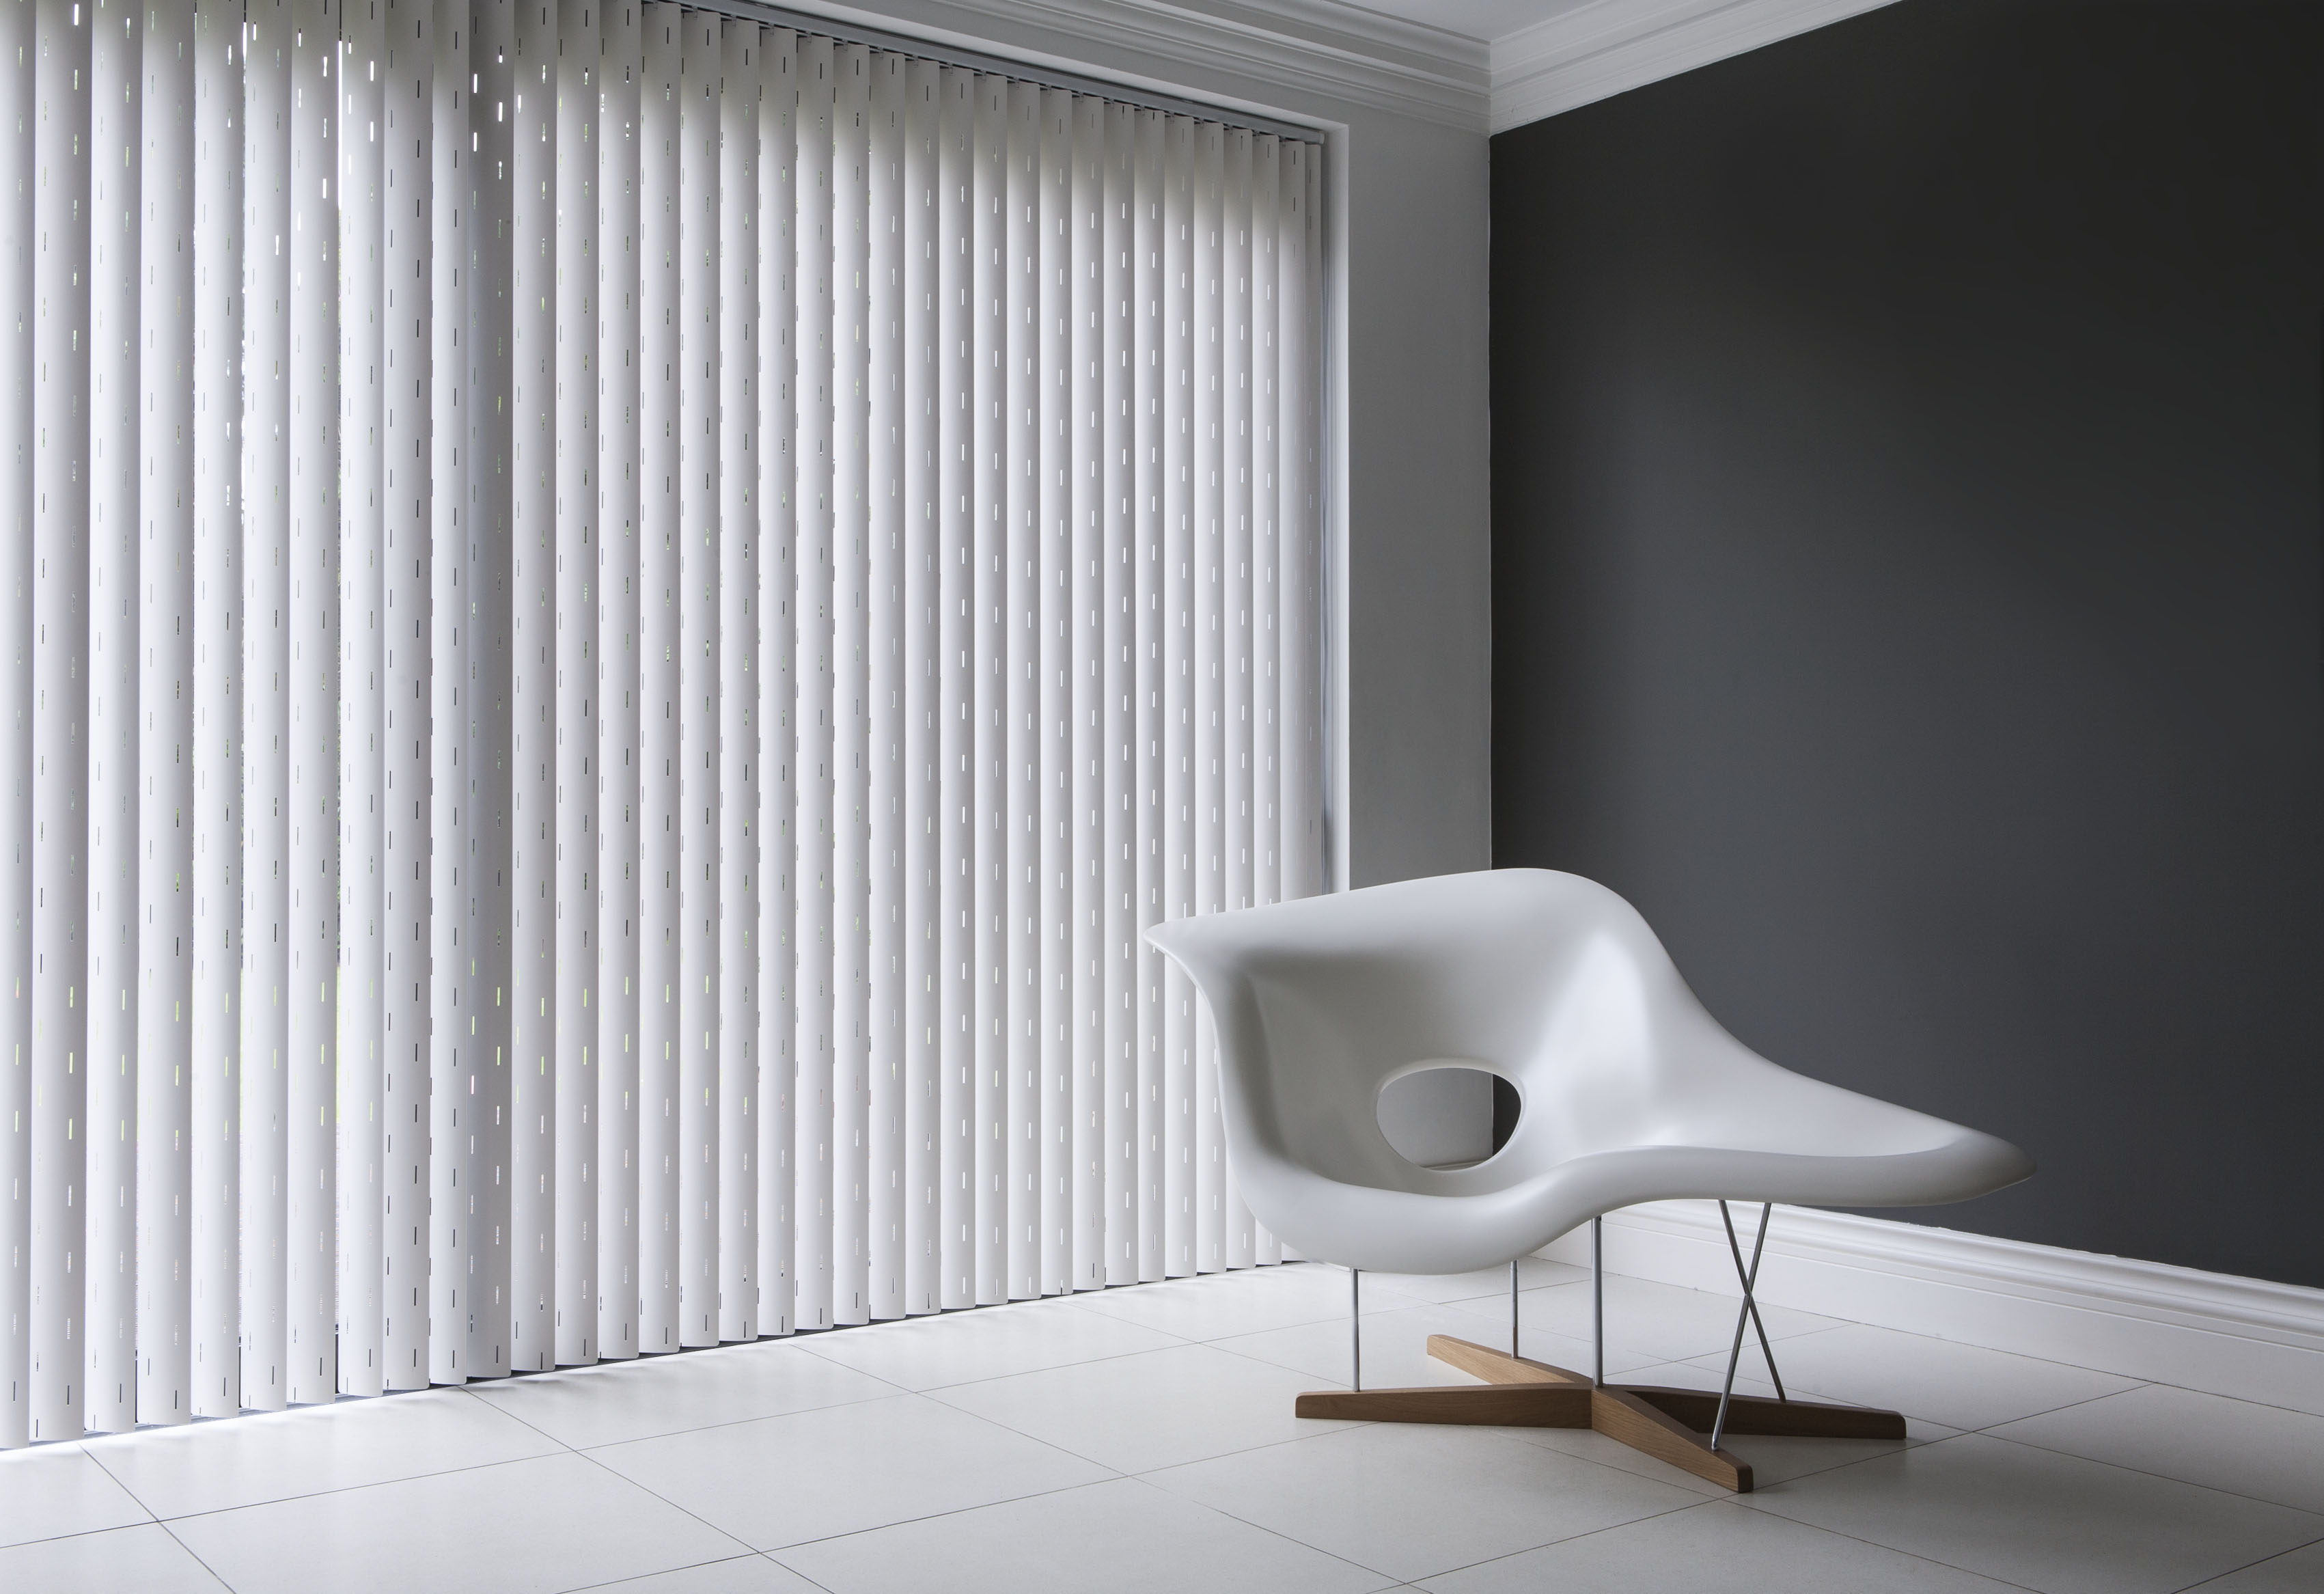 modern-vertical-blinds-slats-with-all-slats-are-blackouts-ridged-pvc-slat-plains-slats-pattern-slats